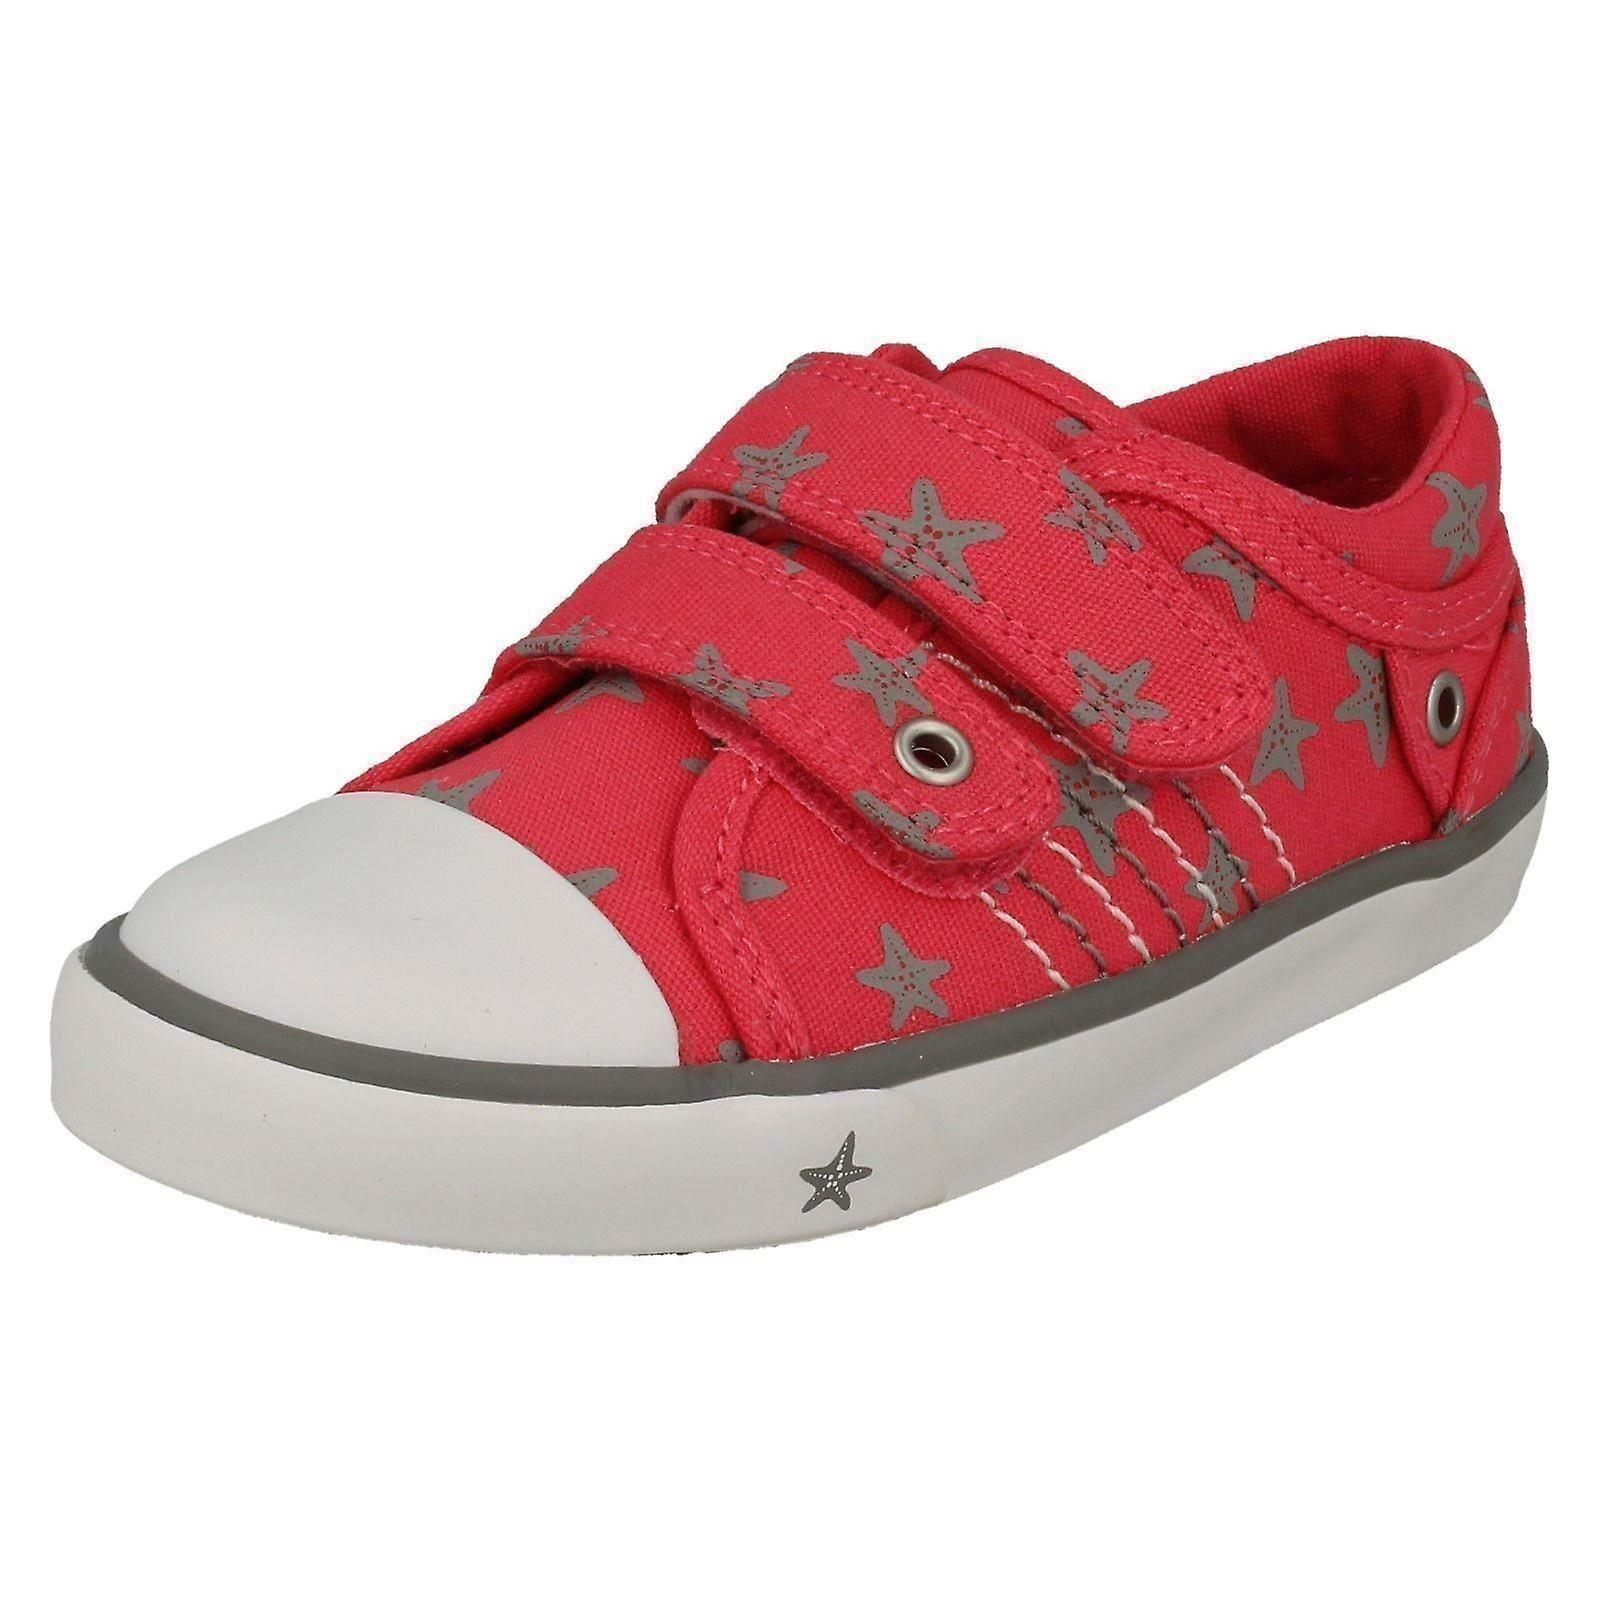 Childrens Boys/Girls Startrite Casual Shoes Zip - Pink 11.5F Canvas - UK Size 11.5F Pink - EU Size 30 - US Size 12.5 3c3ccd